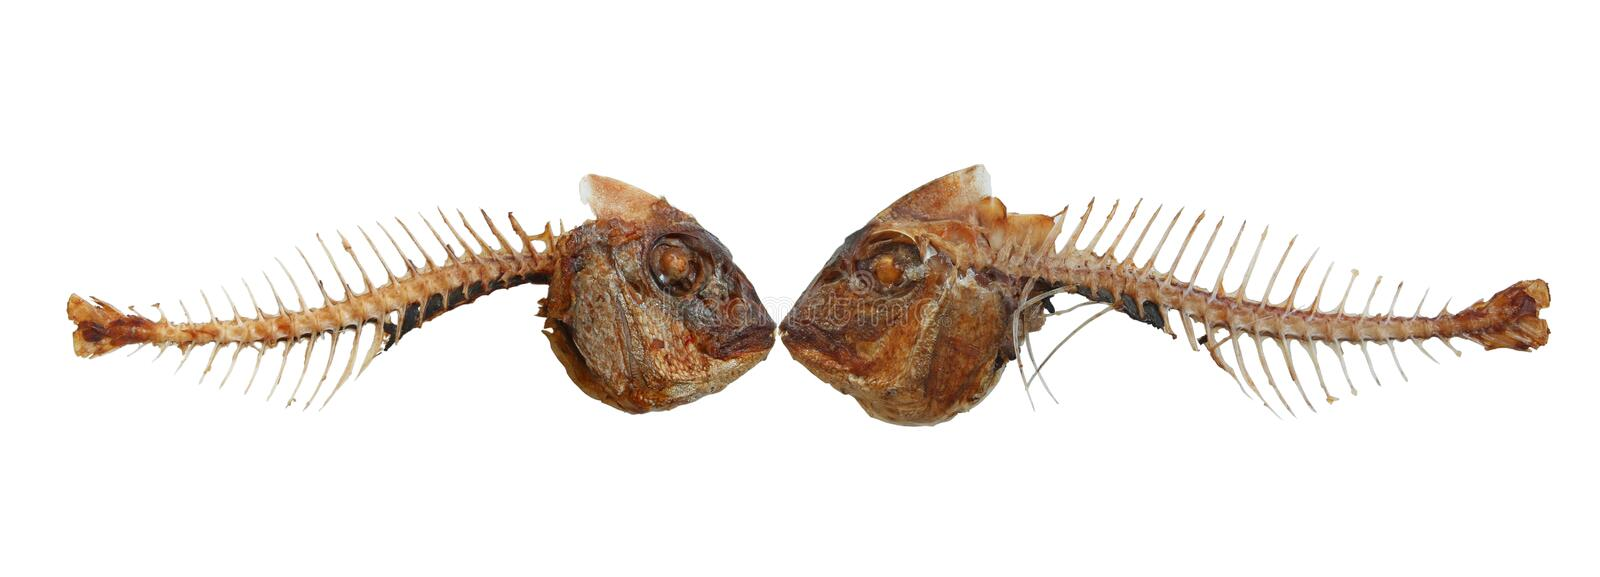 Two Kissing Fish Skeletons Stock Images